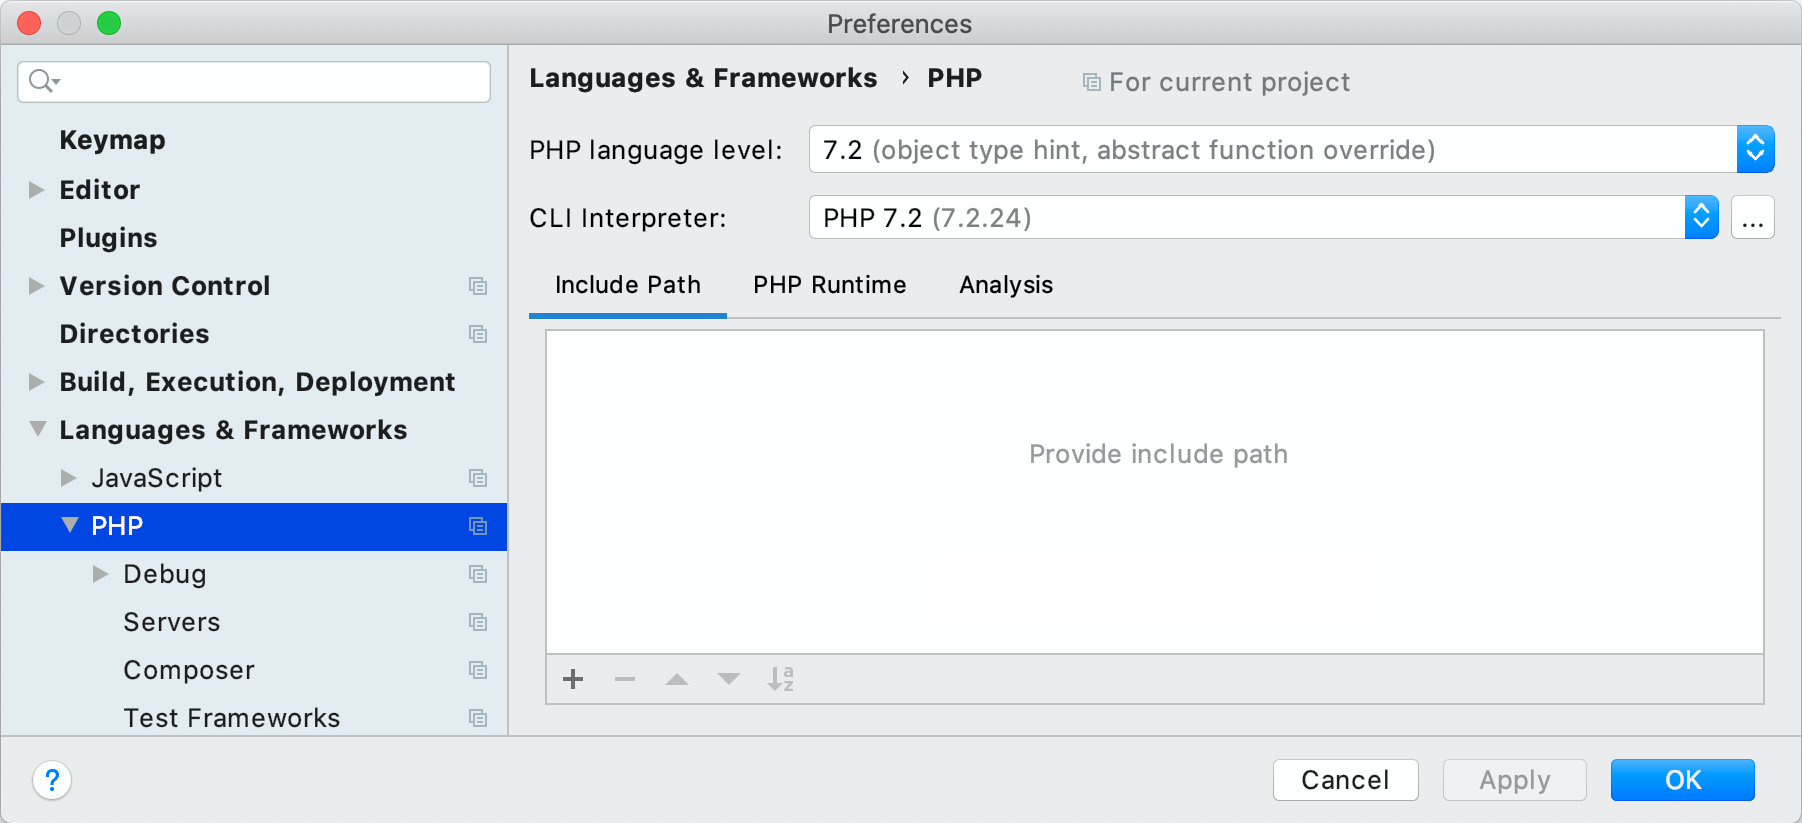 PhpStorm PHP preference panel